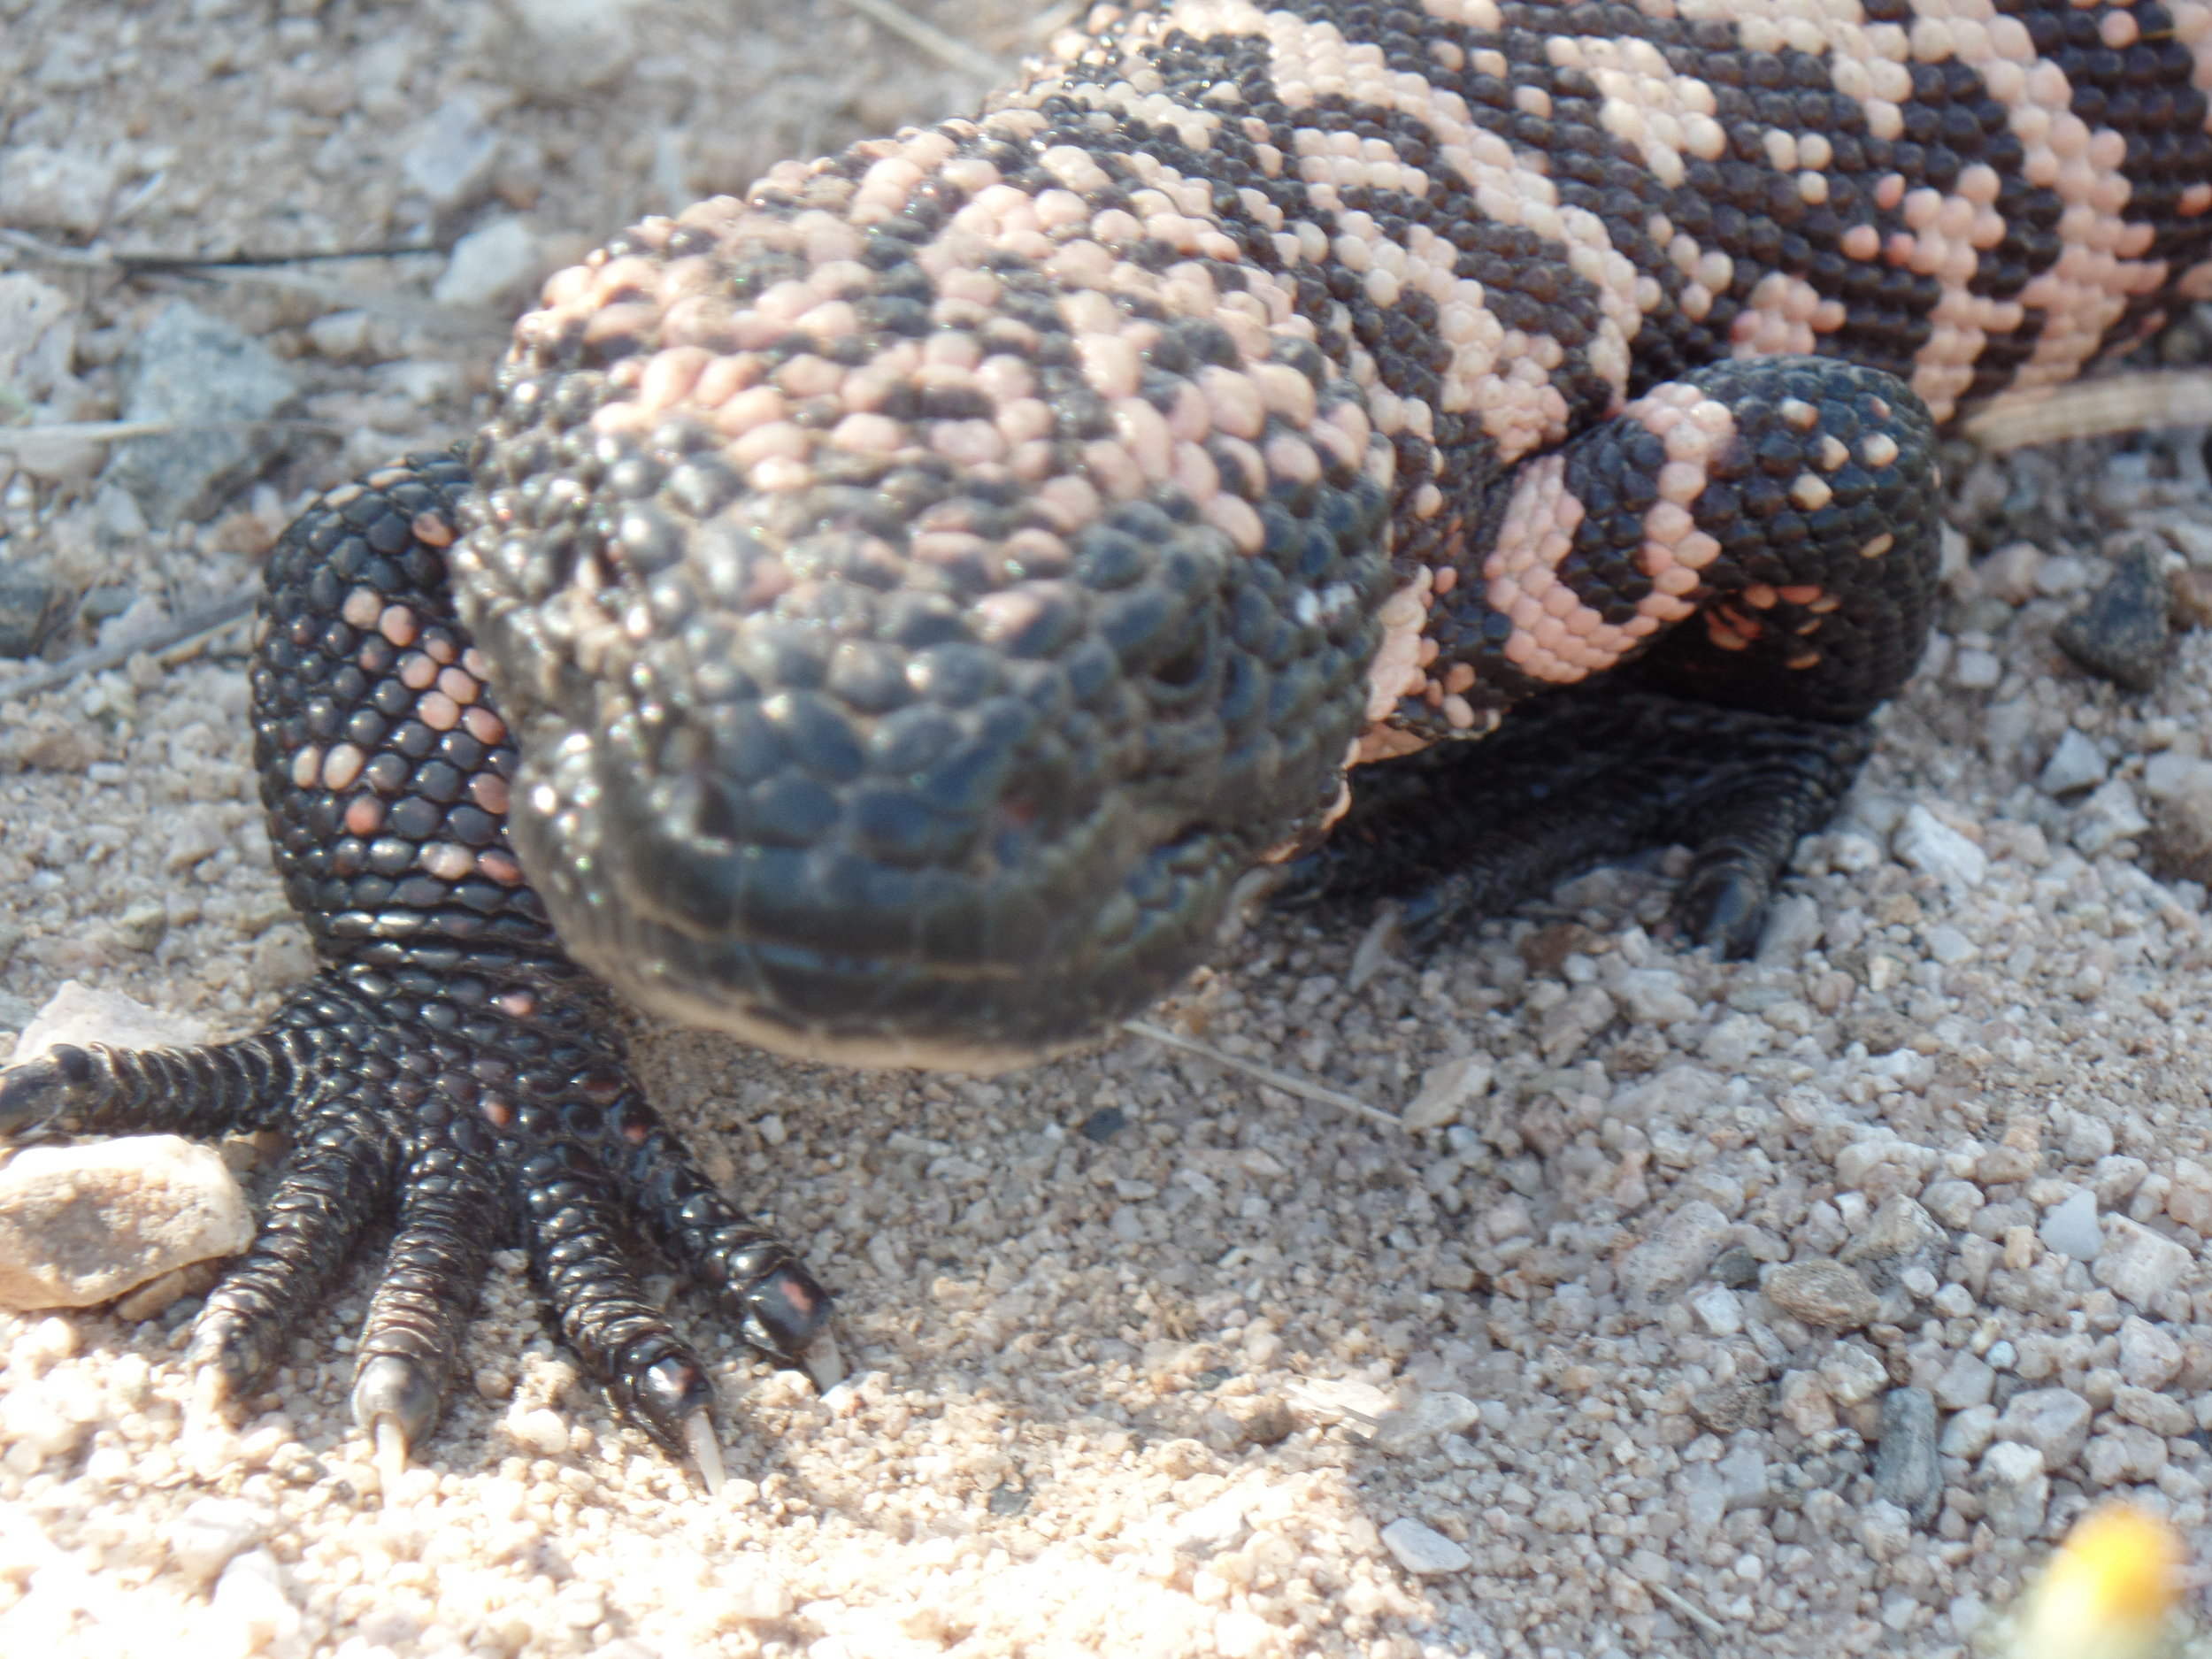 Gila Monster encountered during my training.